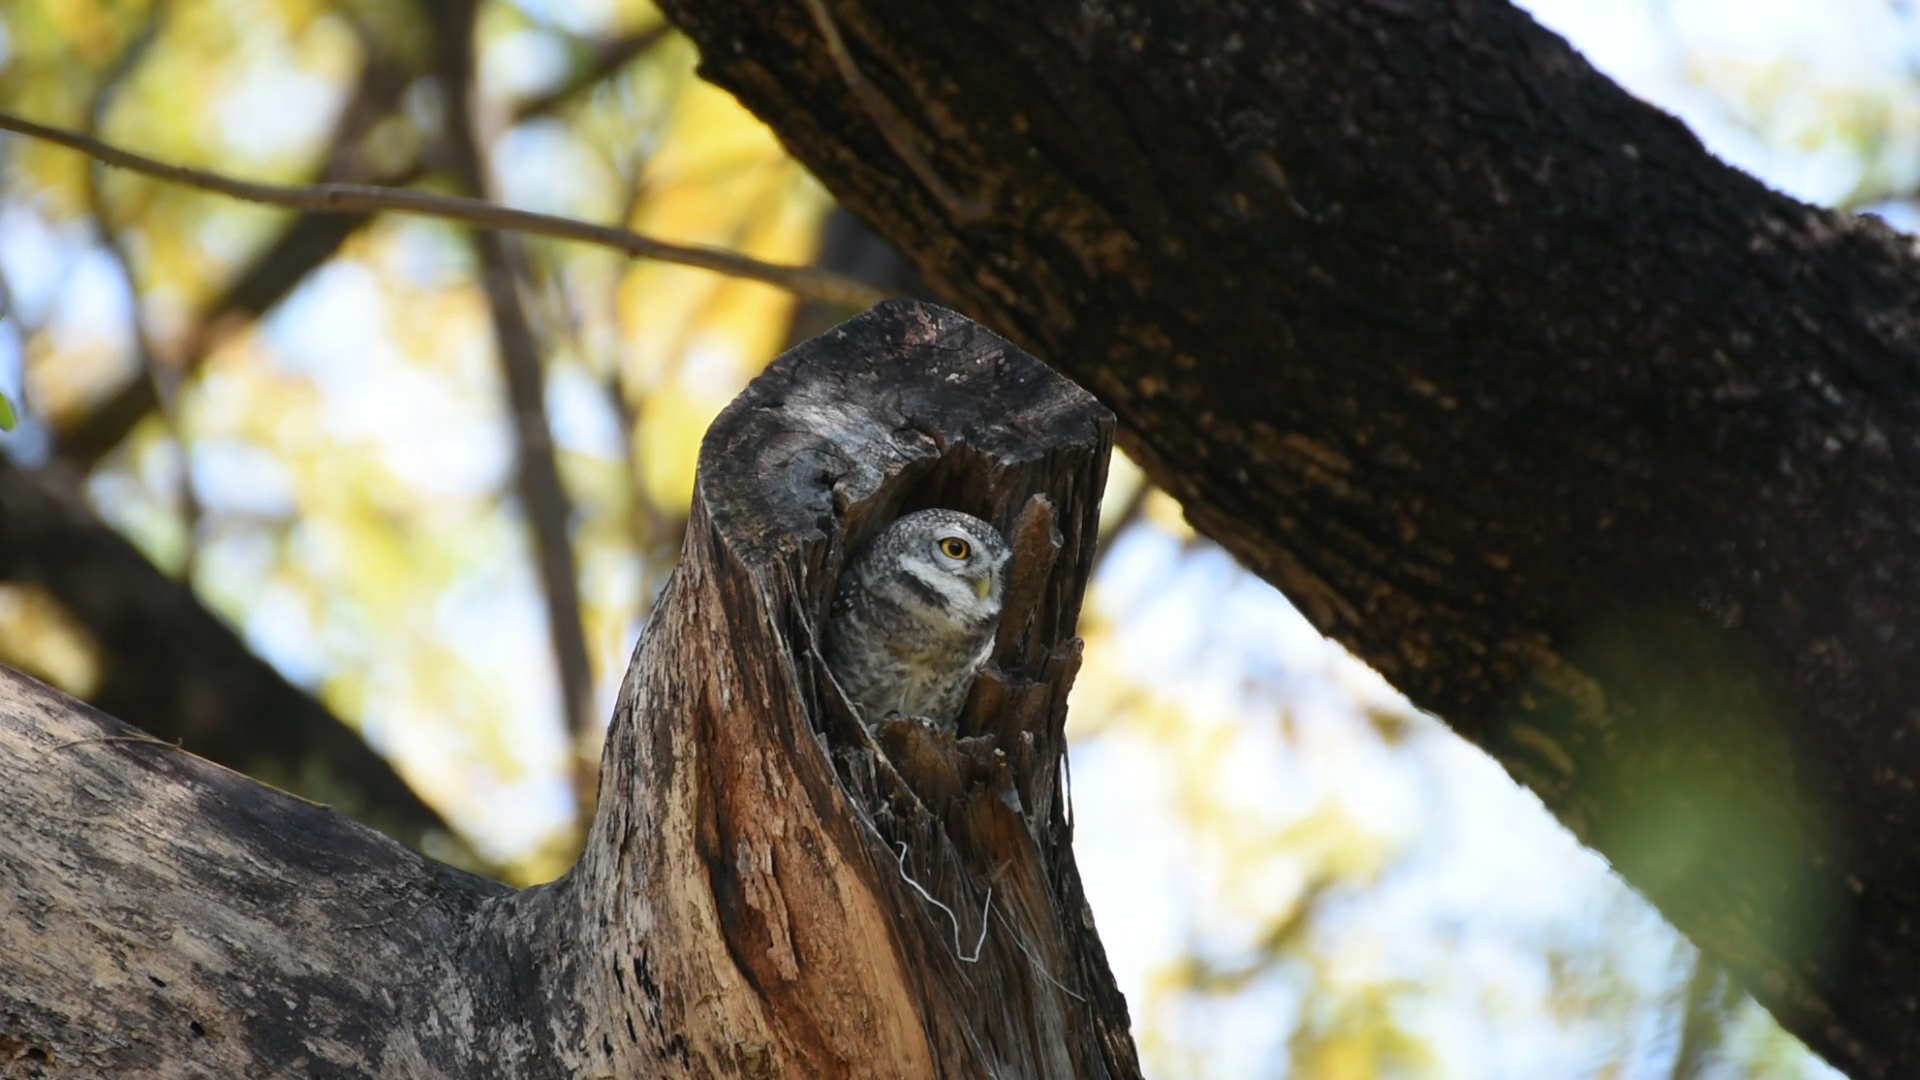 Bird (Spotted owlet, Owl) brown color perched in hollow tree trunk ...